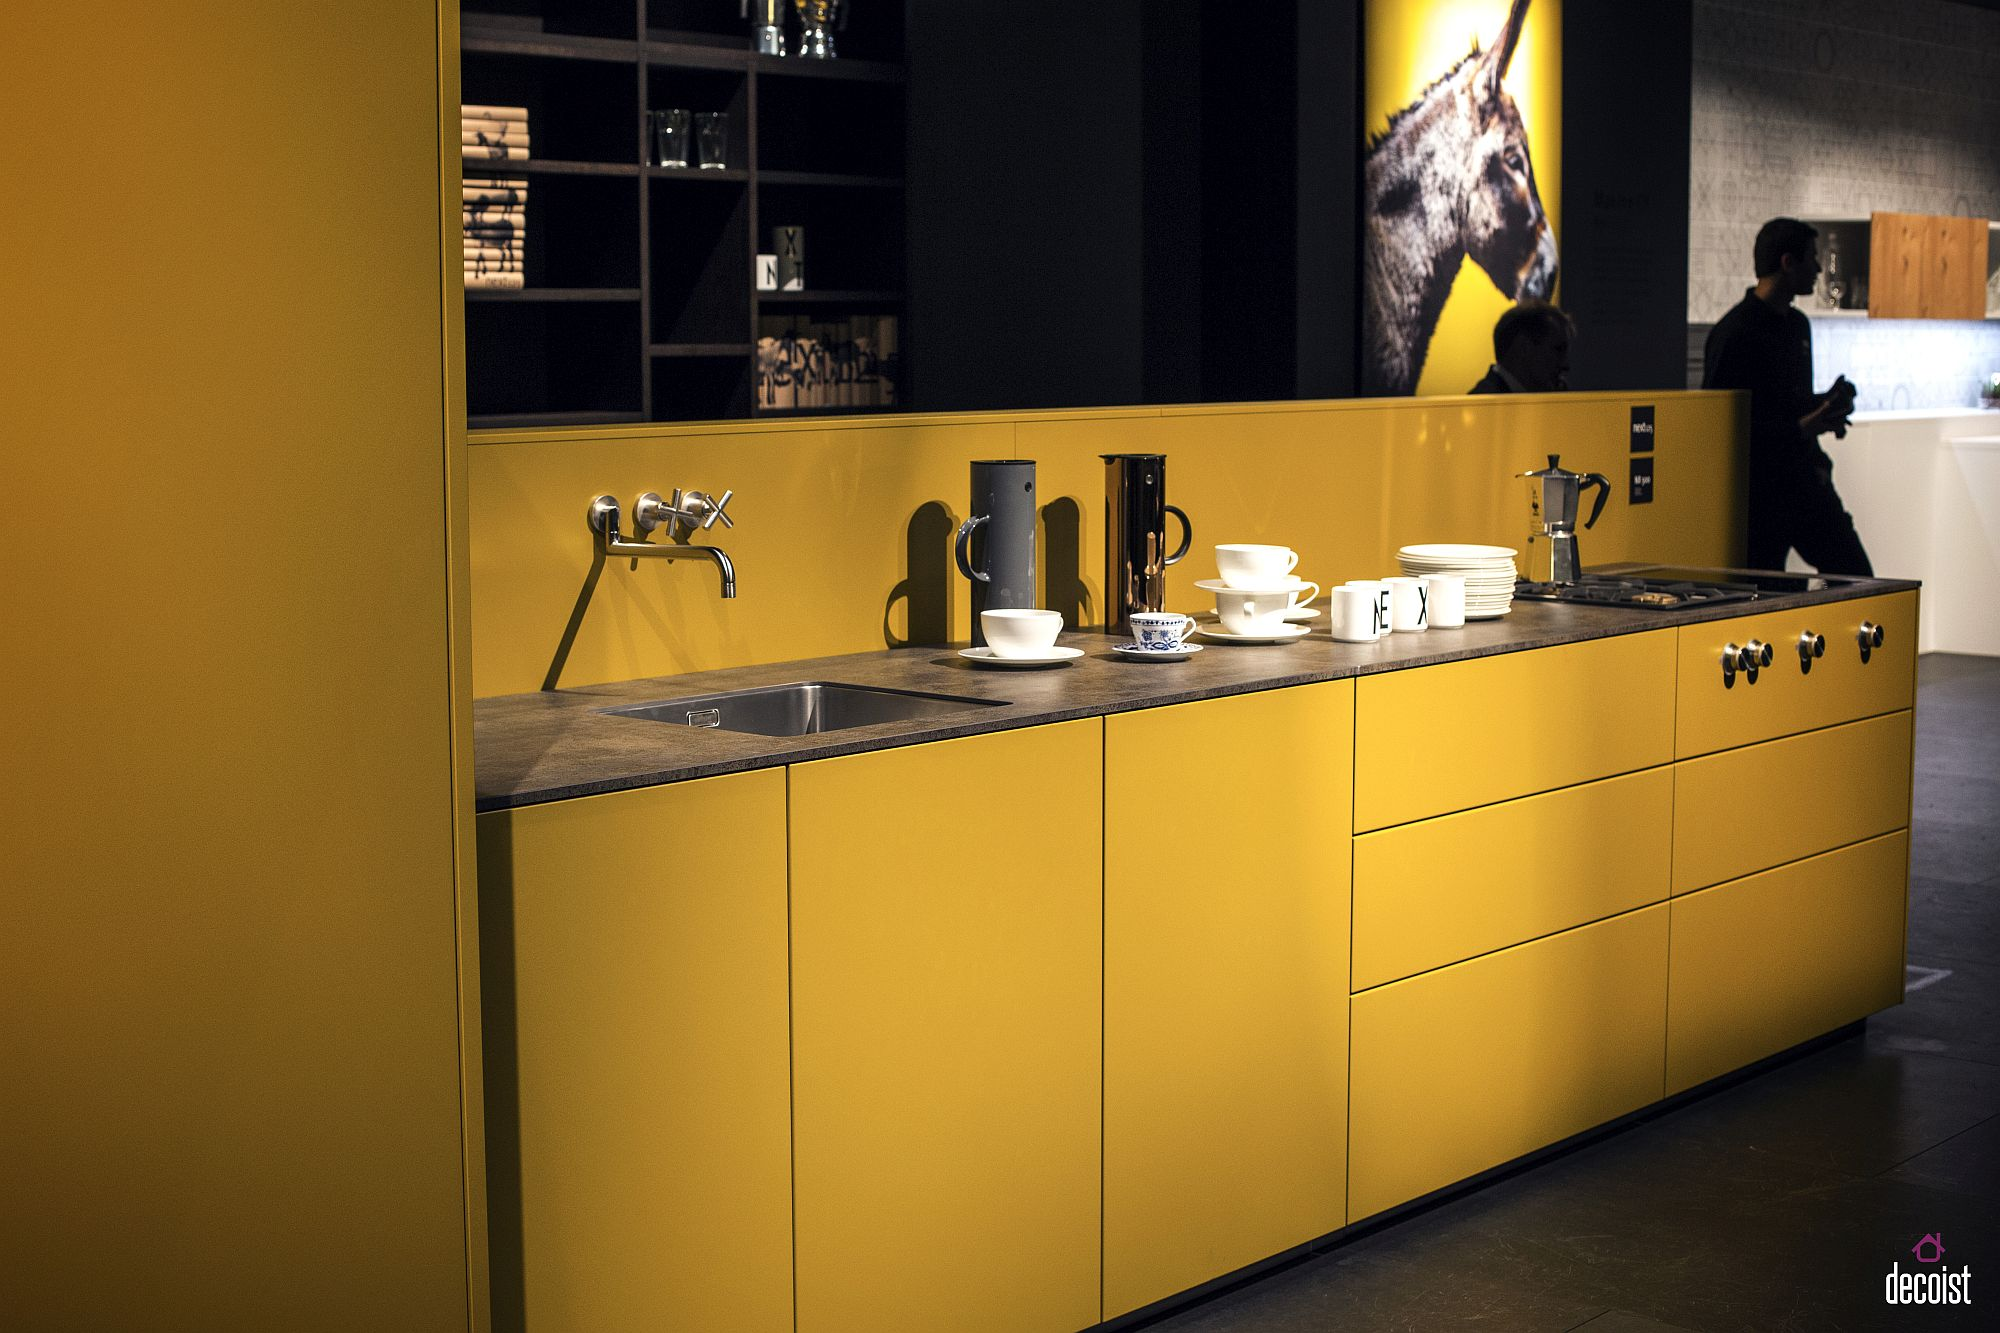 Dashing kitchen in yellow and black with space-savvy design